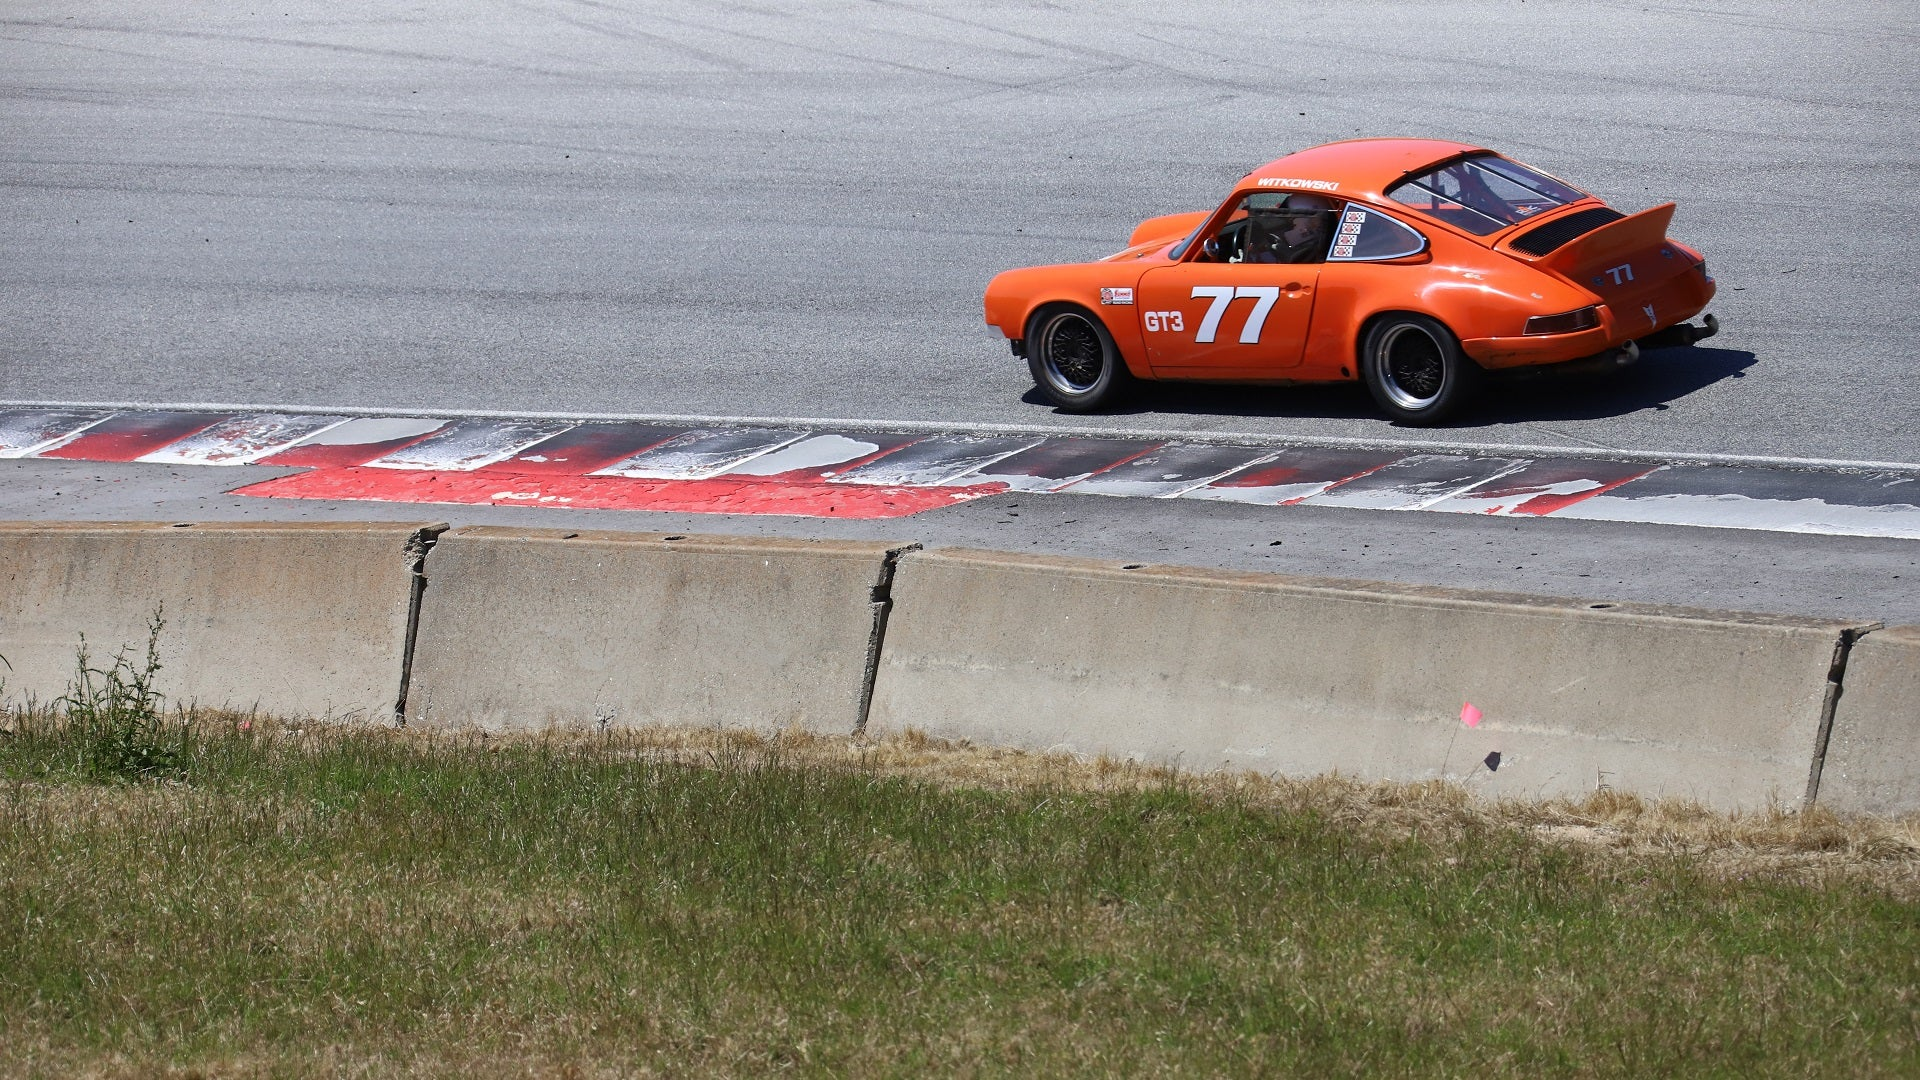 Just an Air-Cooled Porsche Looking Right on a Hot Rip Around Laguna Seca